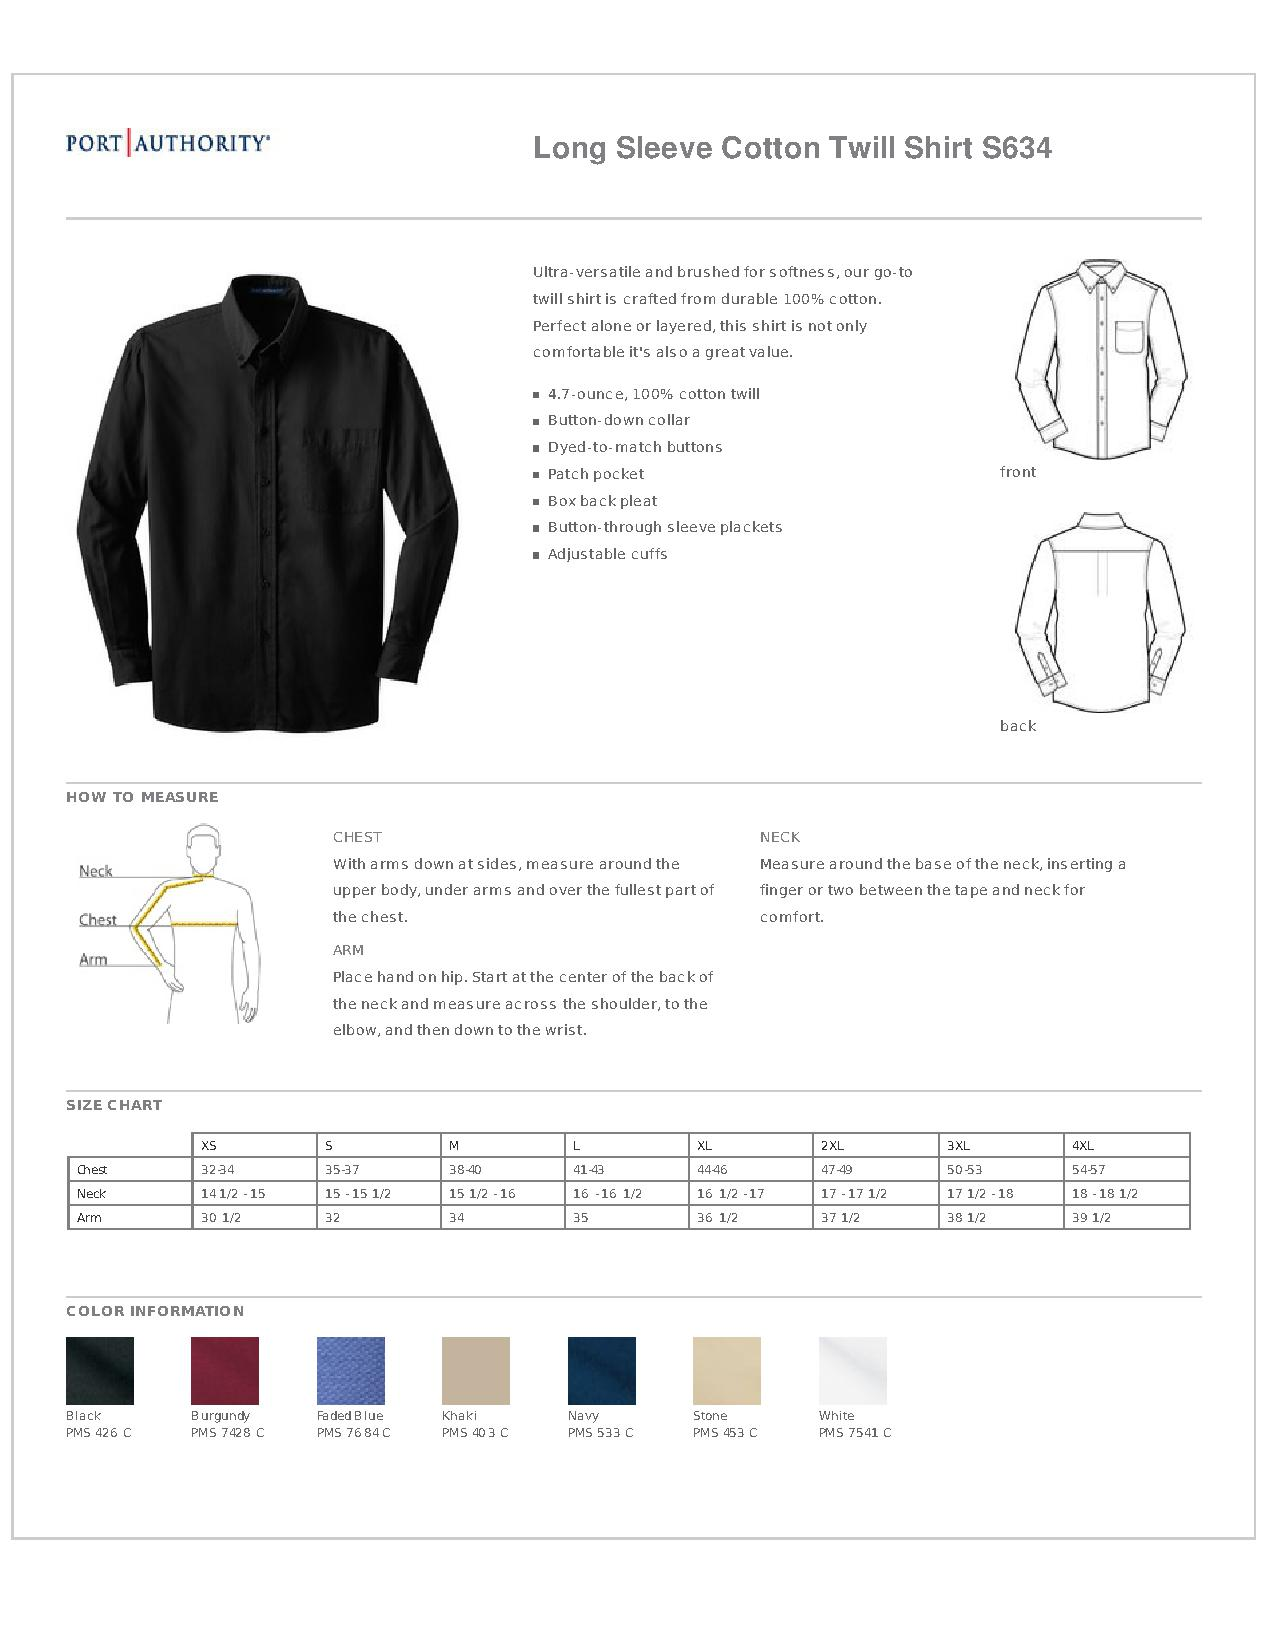 Port Authority® S634 Long Sleeve Value Cotton Twill Shirt - Woven Shirts